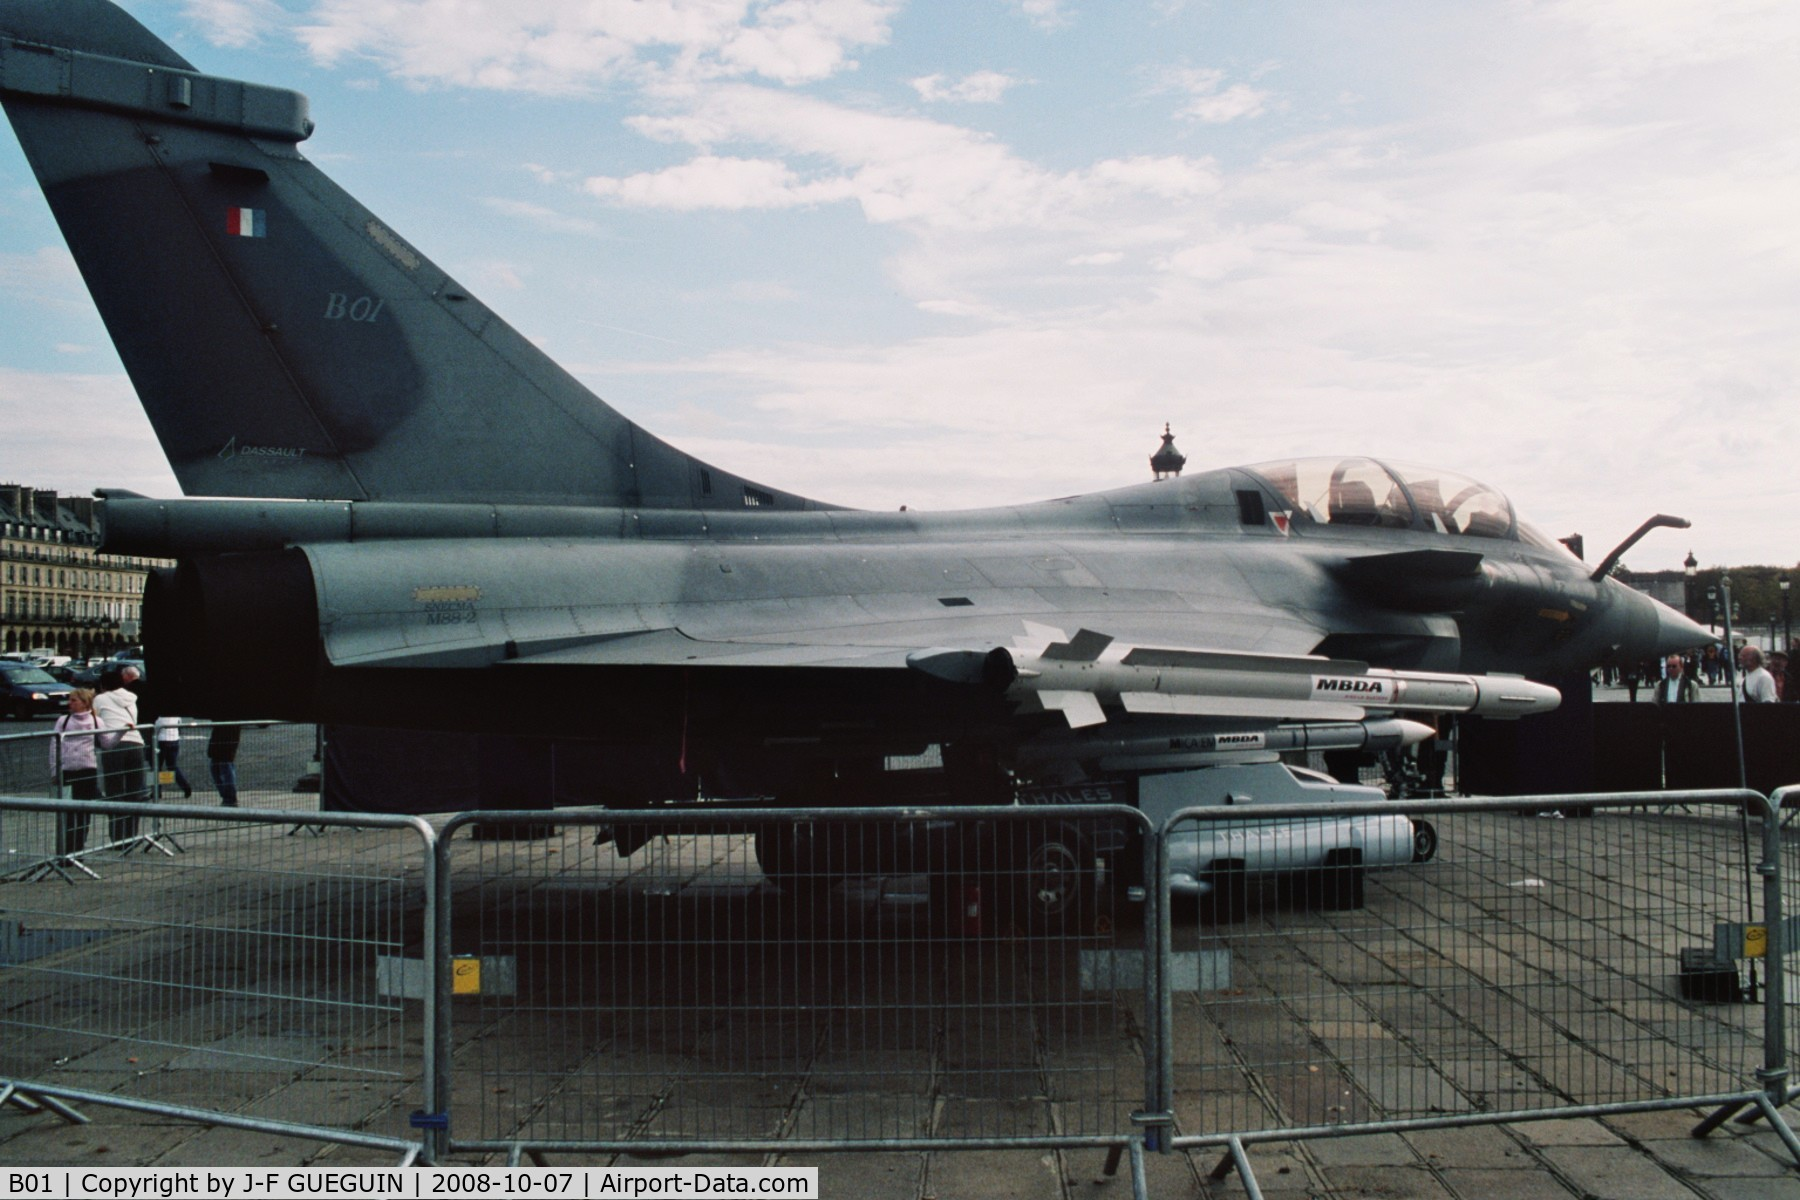 B01, Dassault Rafale B C/N B01, On display at Paris-Champs Elysées for the exhibition